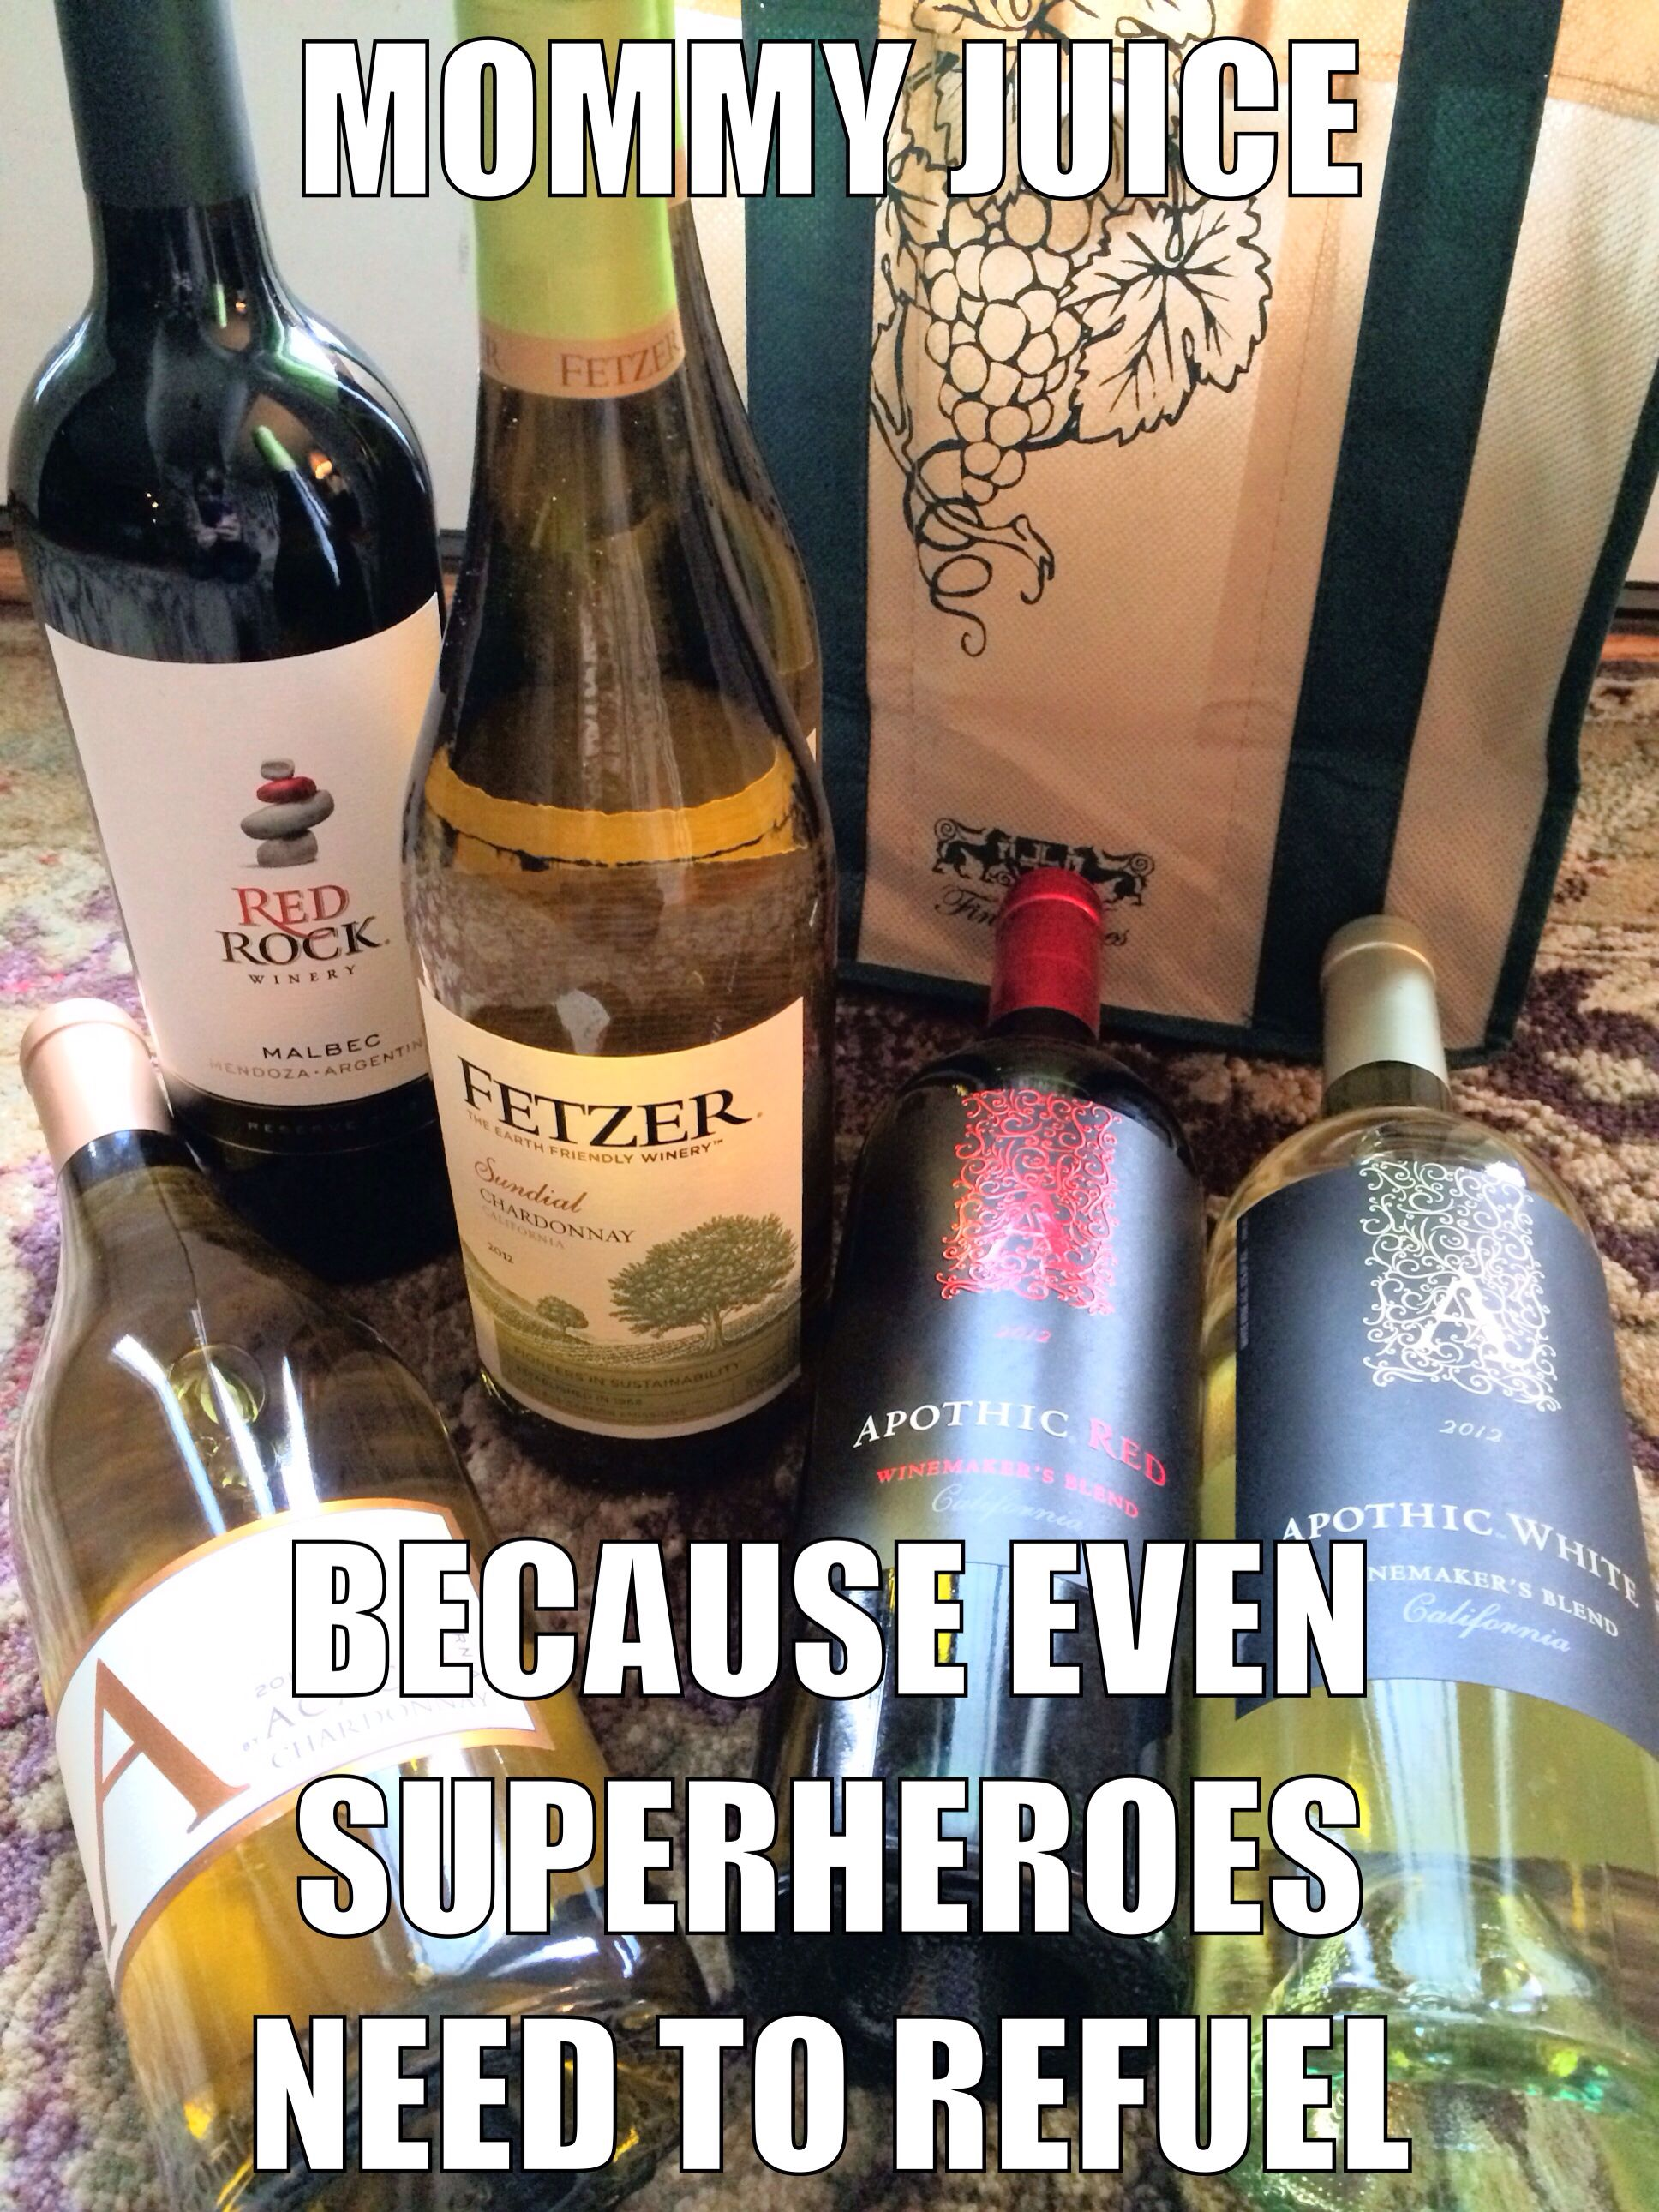 Mommy juice = an essential food group for us superheroes #funny #lol #wine